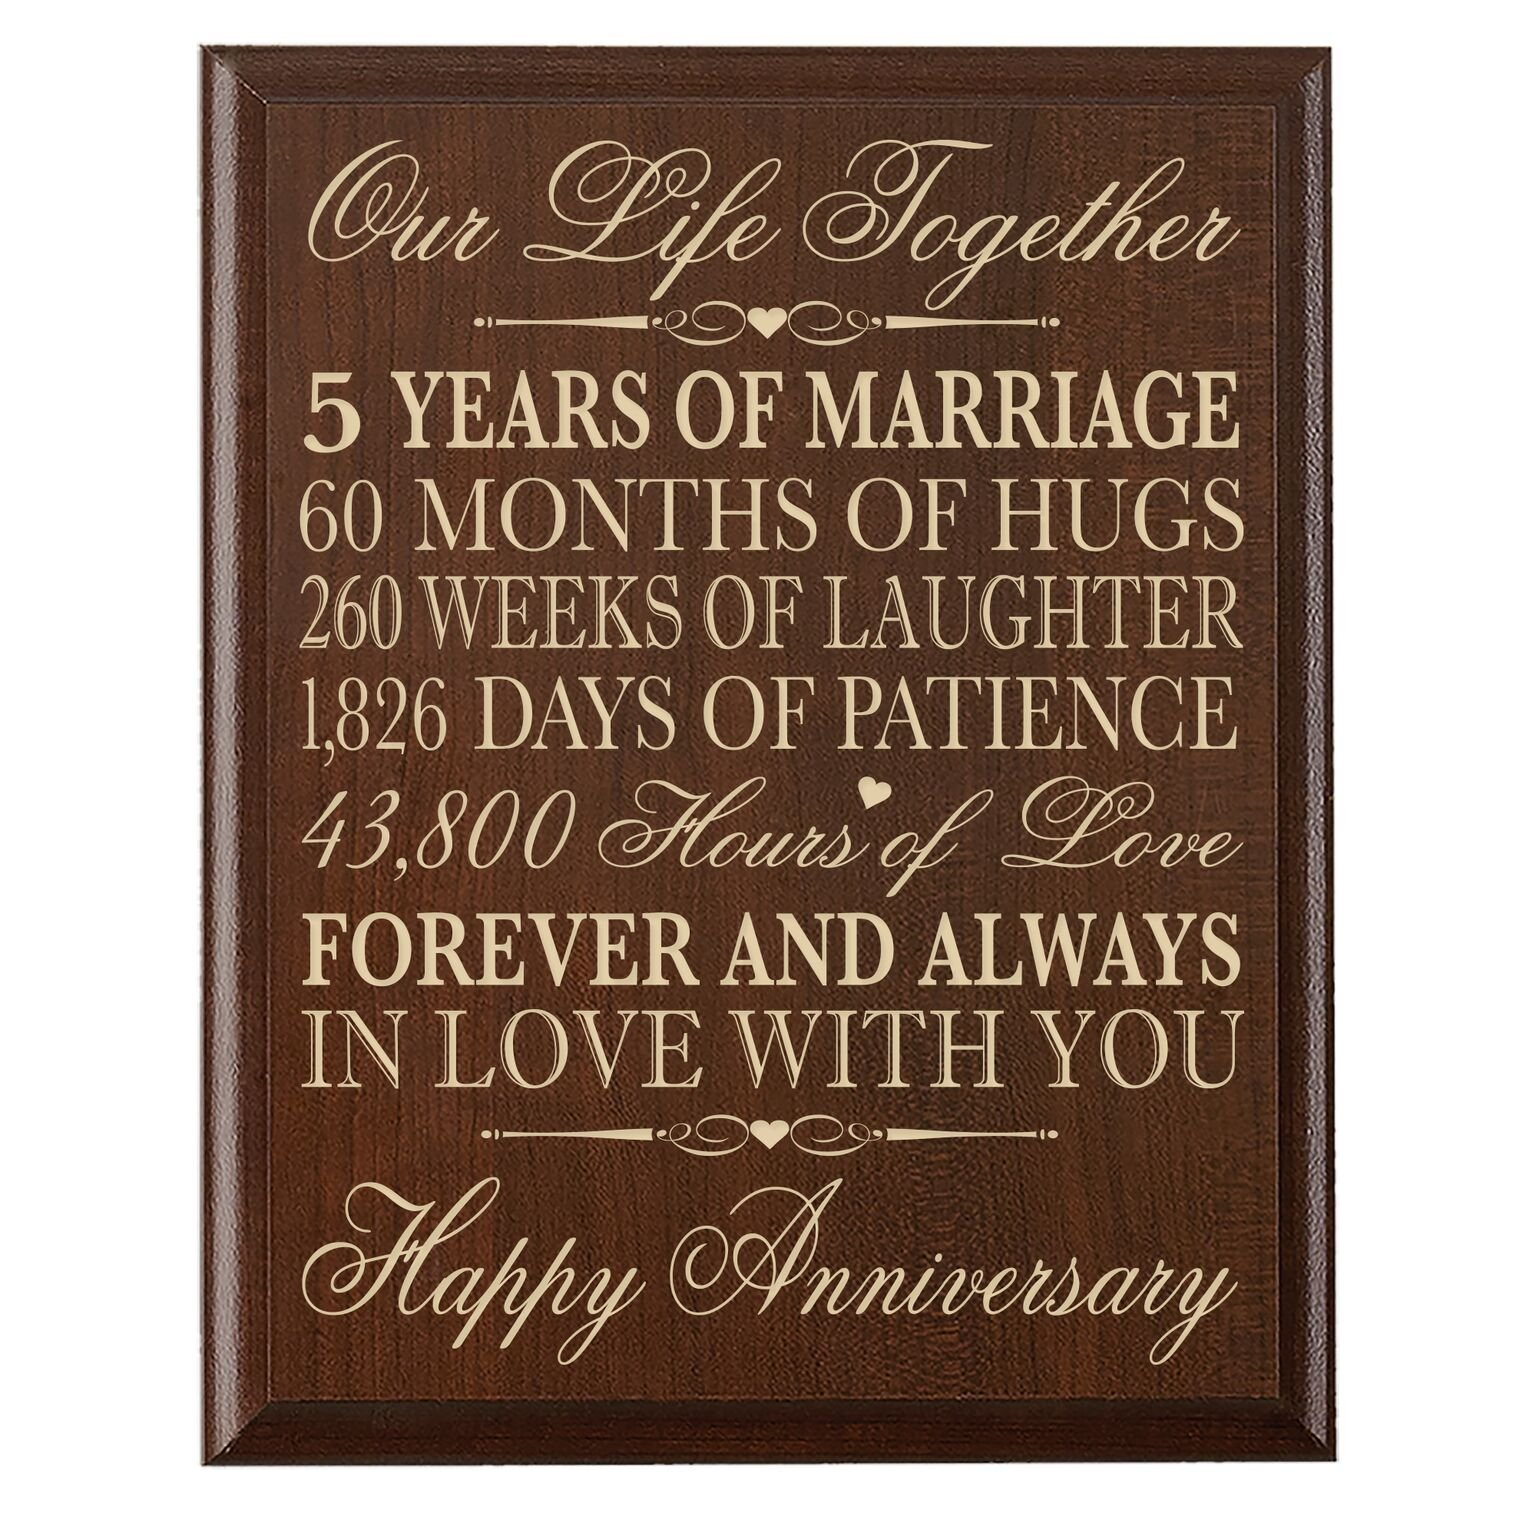 LifeSong Milestones 5th Wedding Anniversary Cherry Wall Plaque Gifts for Couple, 5th Anniversary Gifts for Her,5th Wedding Anniversary Gifts for Him 12 inches wide X 15 inches high Wall Plaque By by LifeSong Milestones (Image #1)